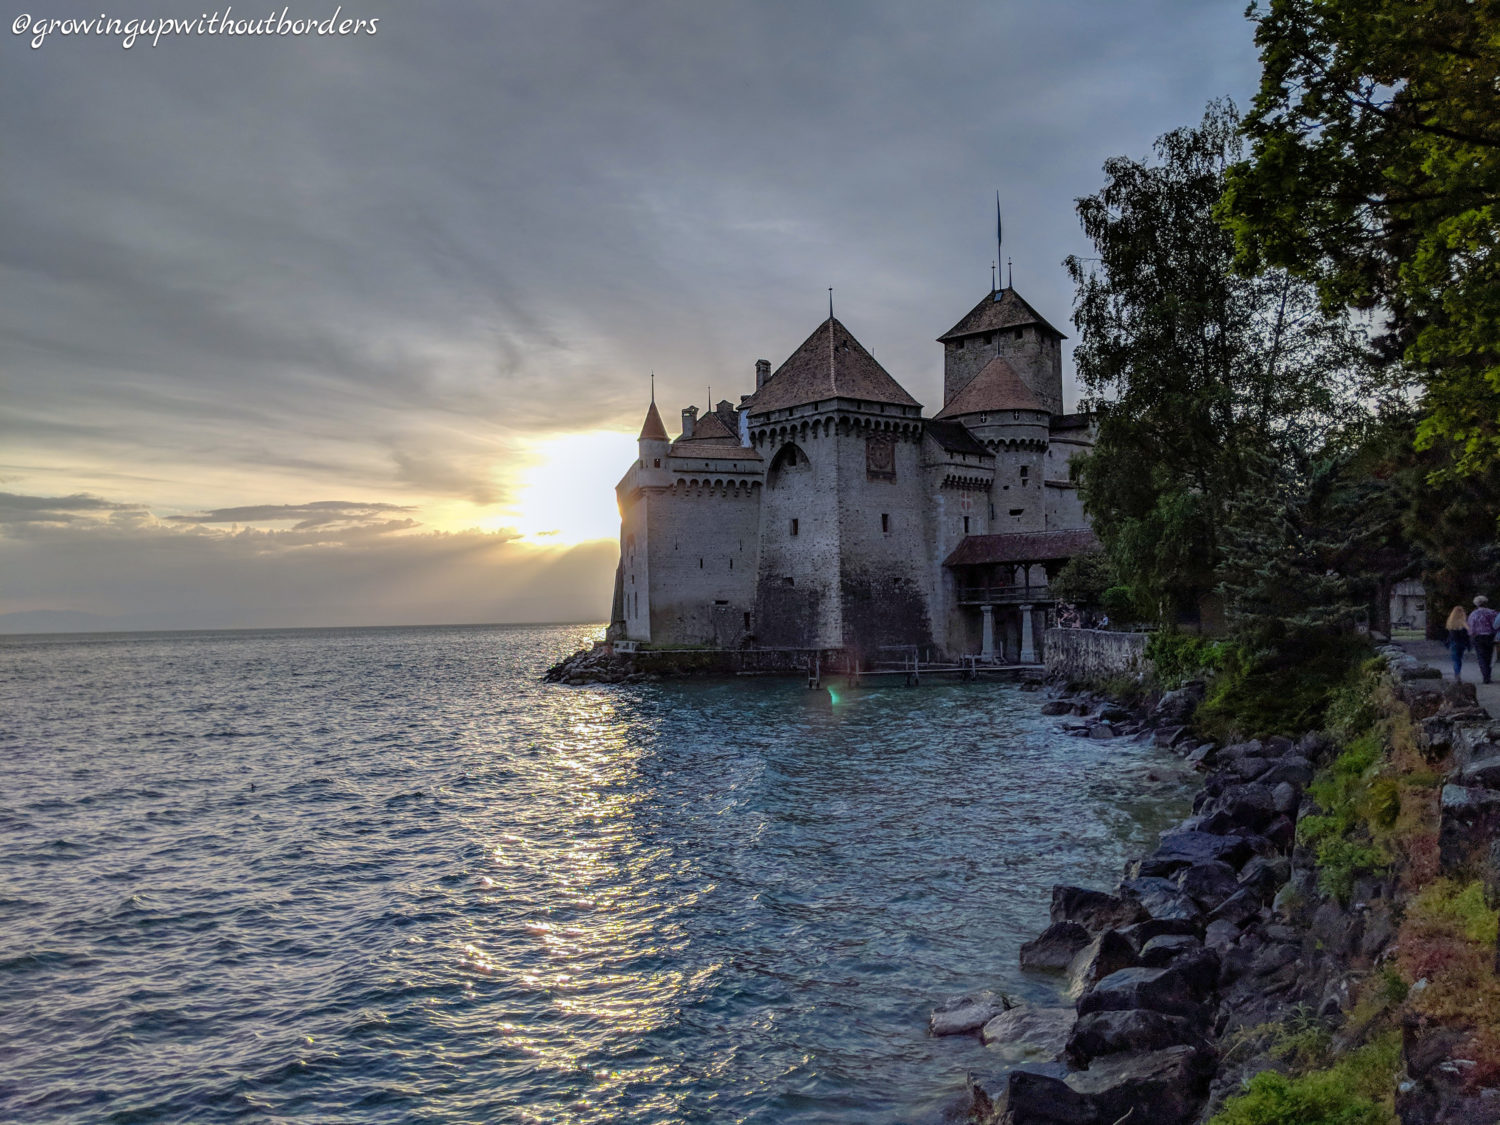 Villeneuve, Chateau de Chillon, Switzerlandx